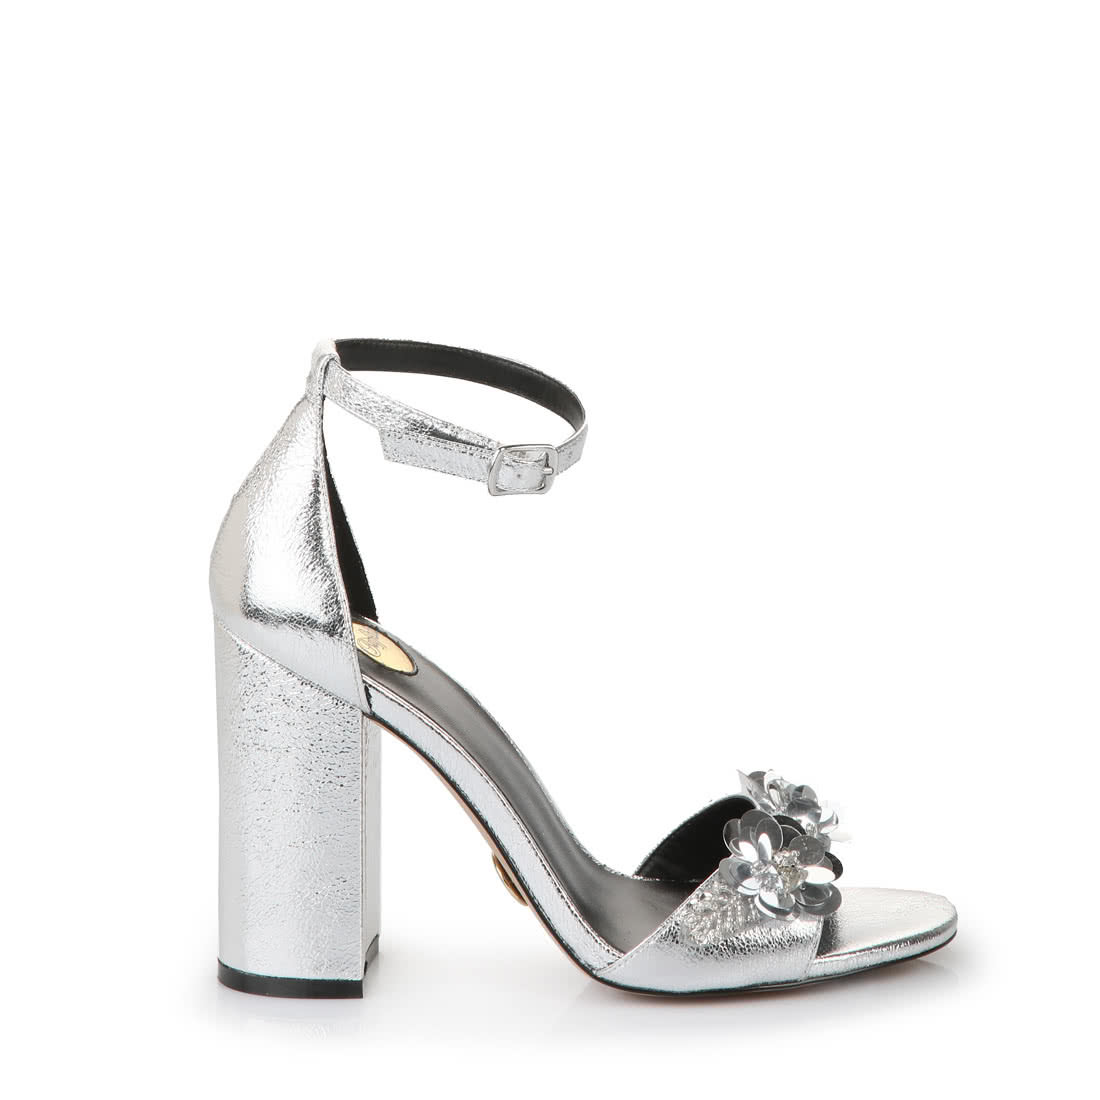 ff9cf100a5f81c Buffalo high-heeled sandals in silver with decorative flower buy ...